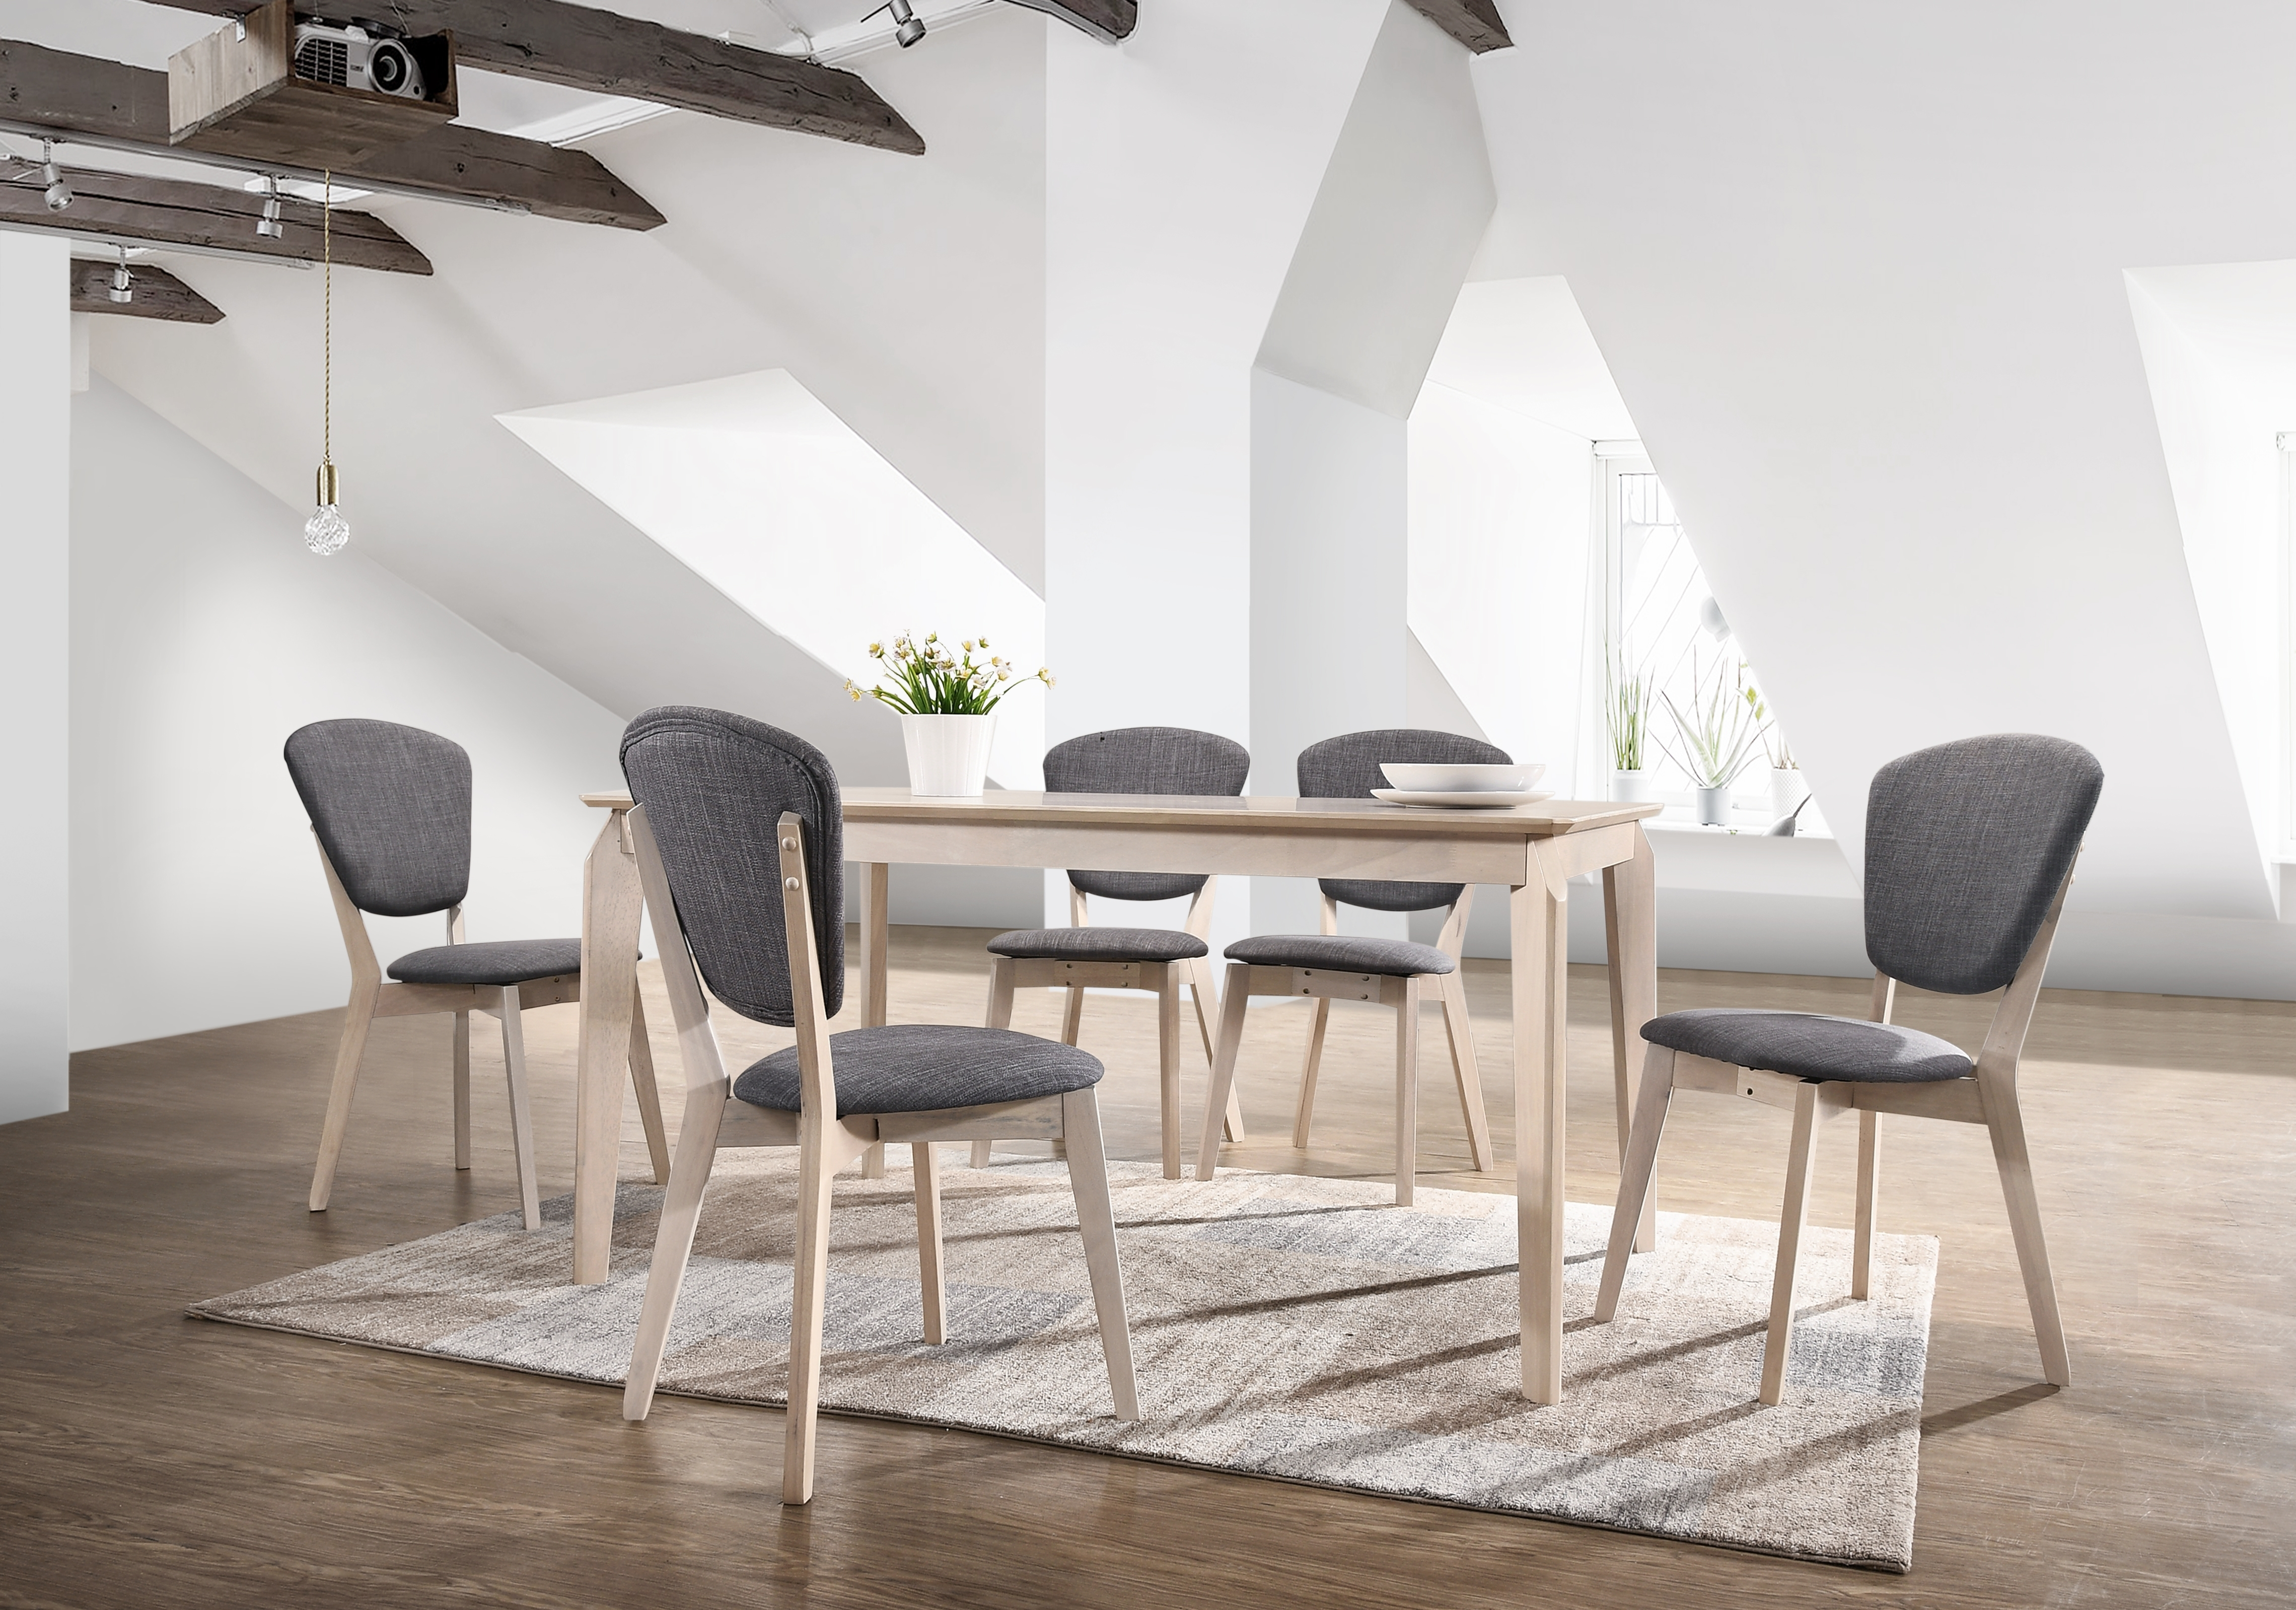 Noah Designer Dining Table In Solid Wood Scandinavian – White Oak Within Most Up To Date Noah Dining Tables (View 16 of 25)